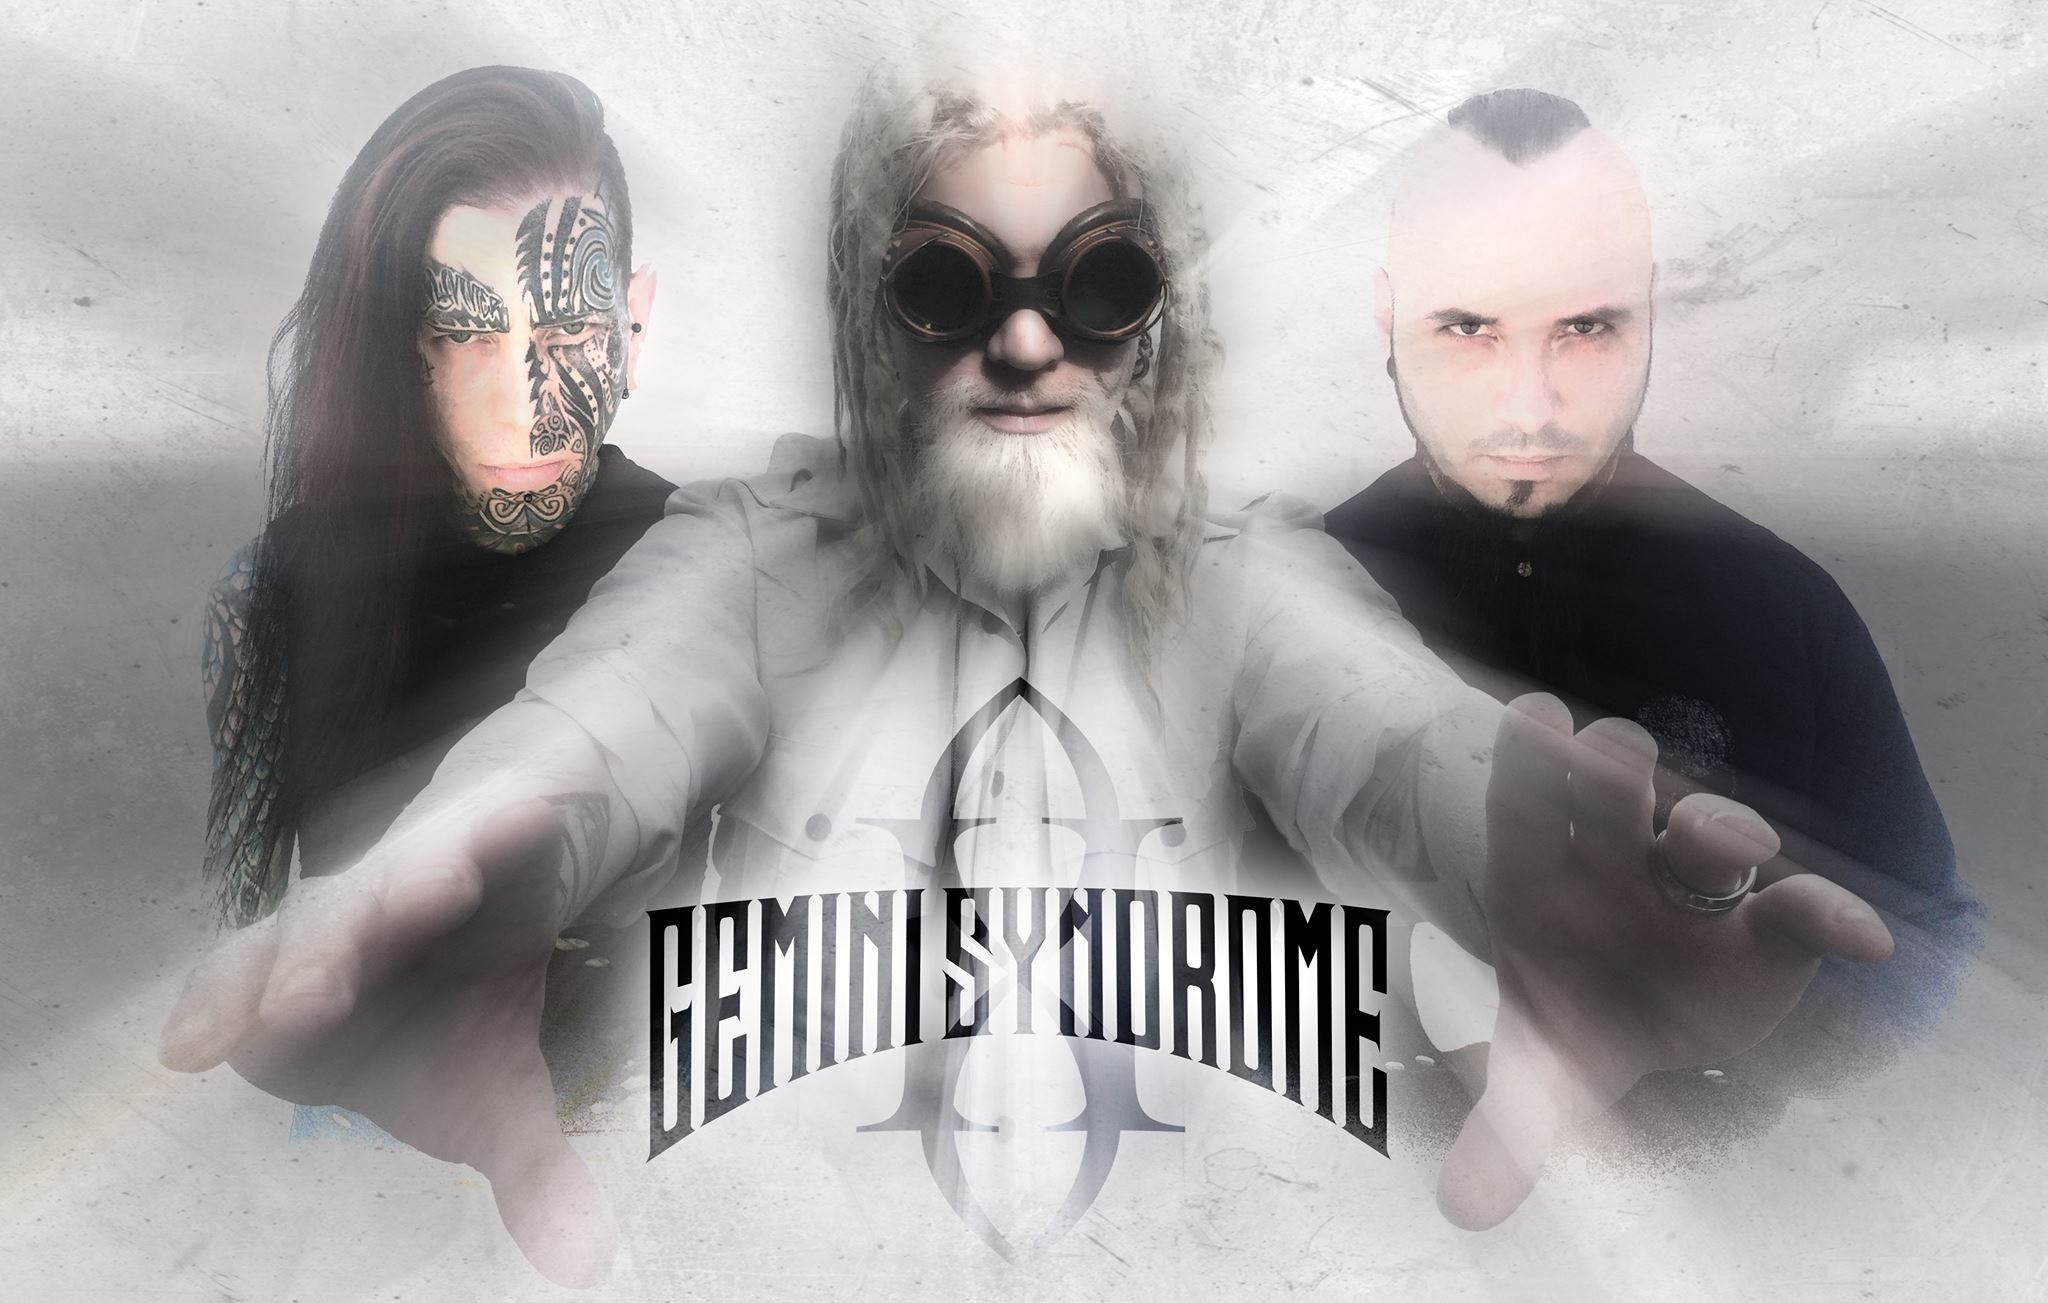 Gemini Syndrome Wallpapers Hd